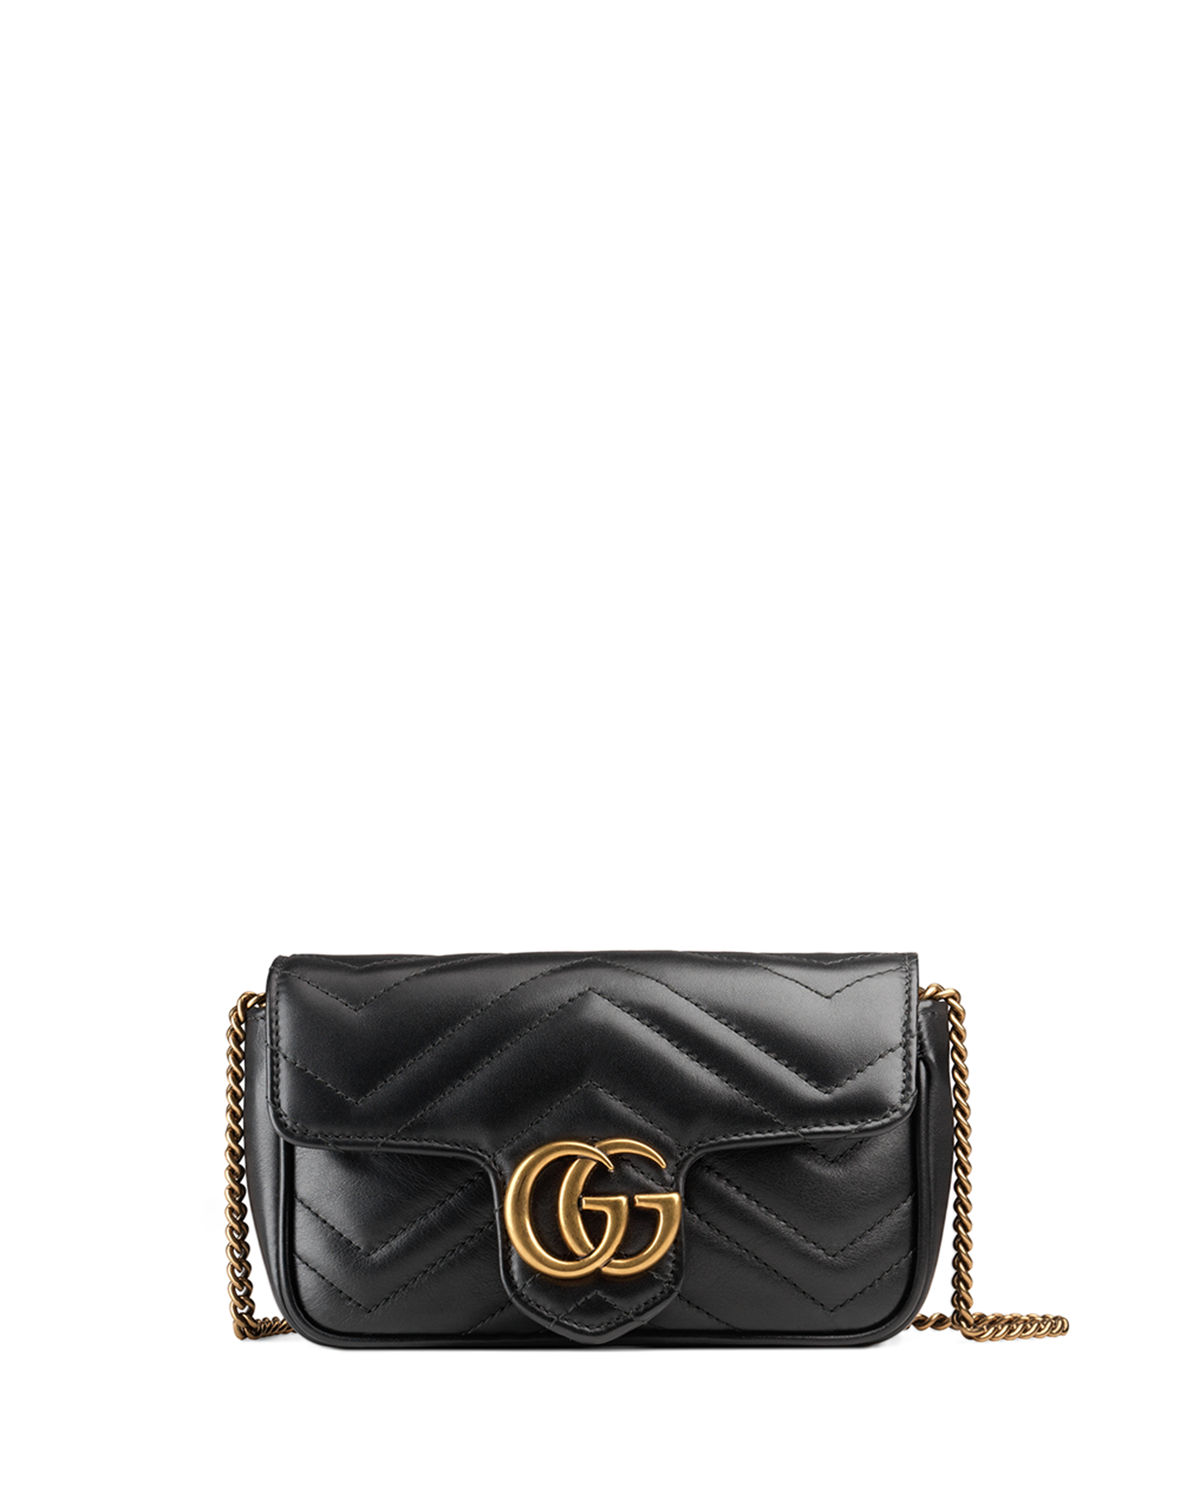 879ce6ac5383 Gucci GG Marmont Matelasse Leather Super Mini Bag